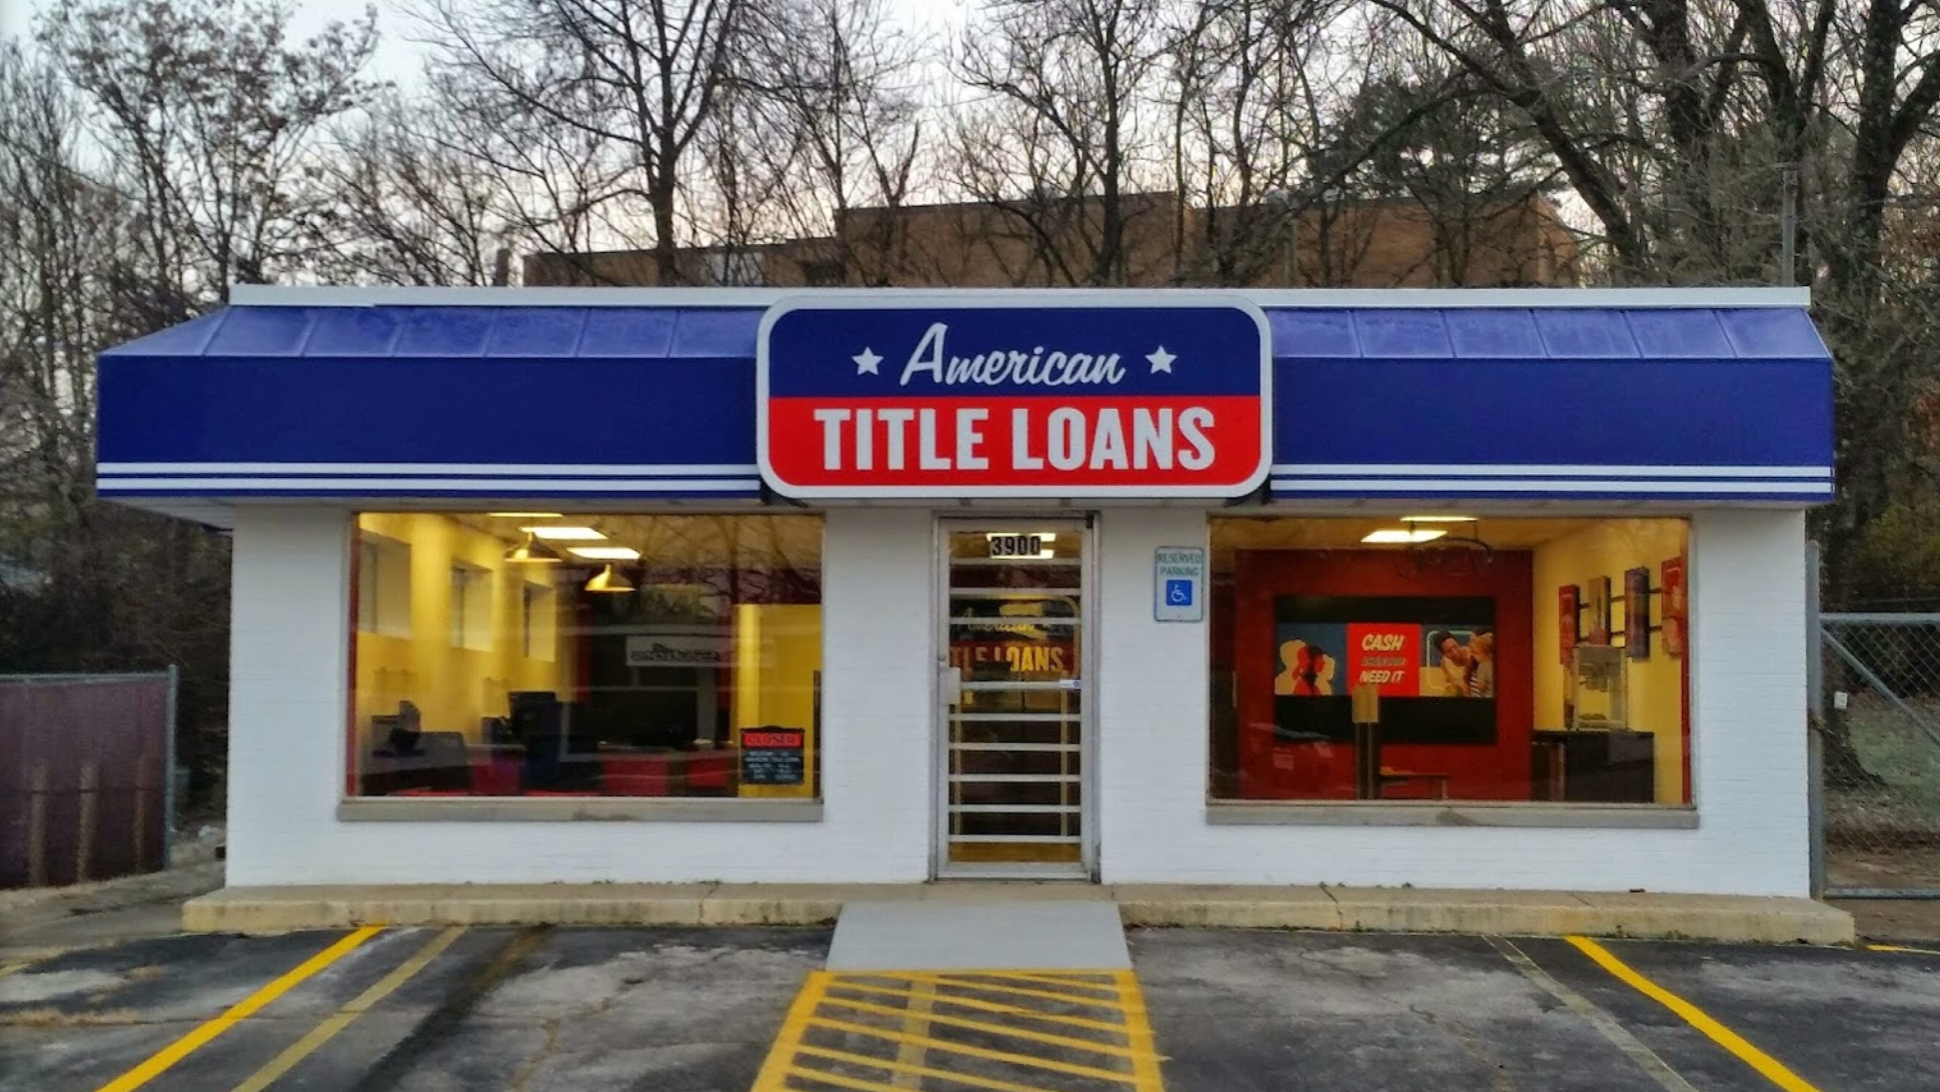 What You Need to Apply for an In-Store Loan